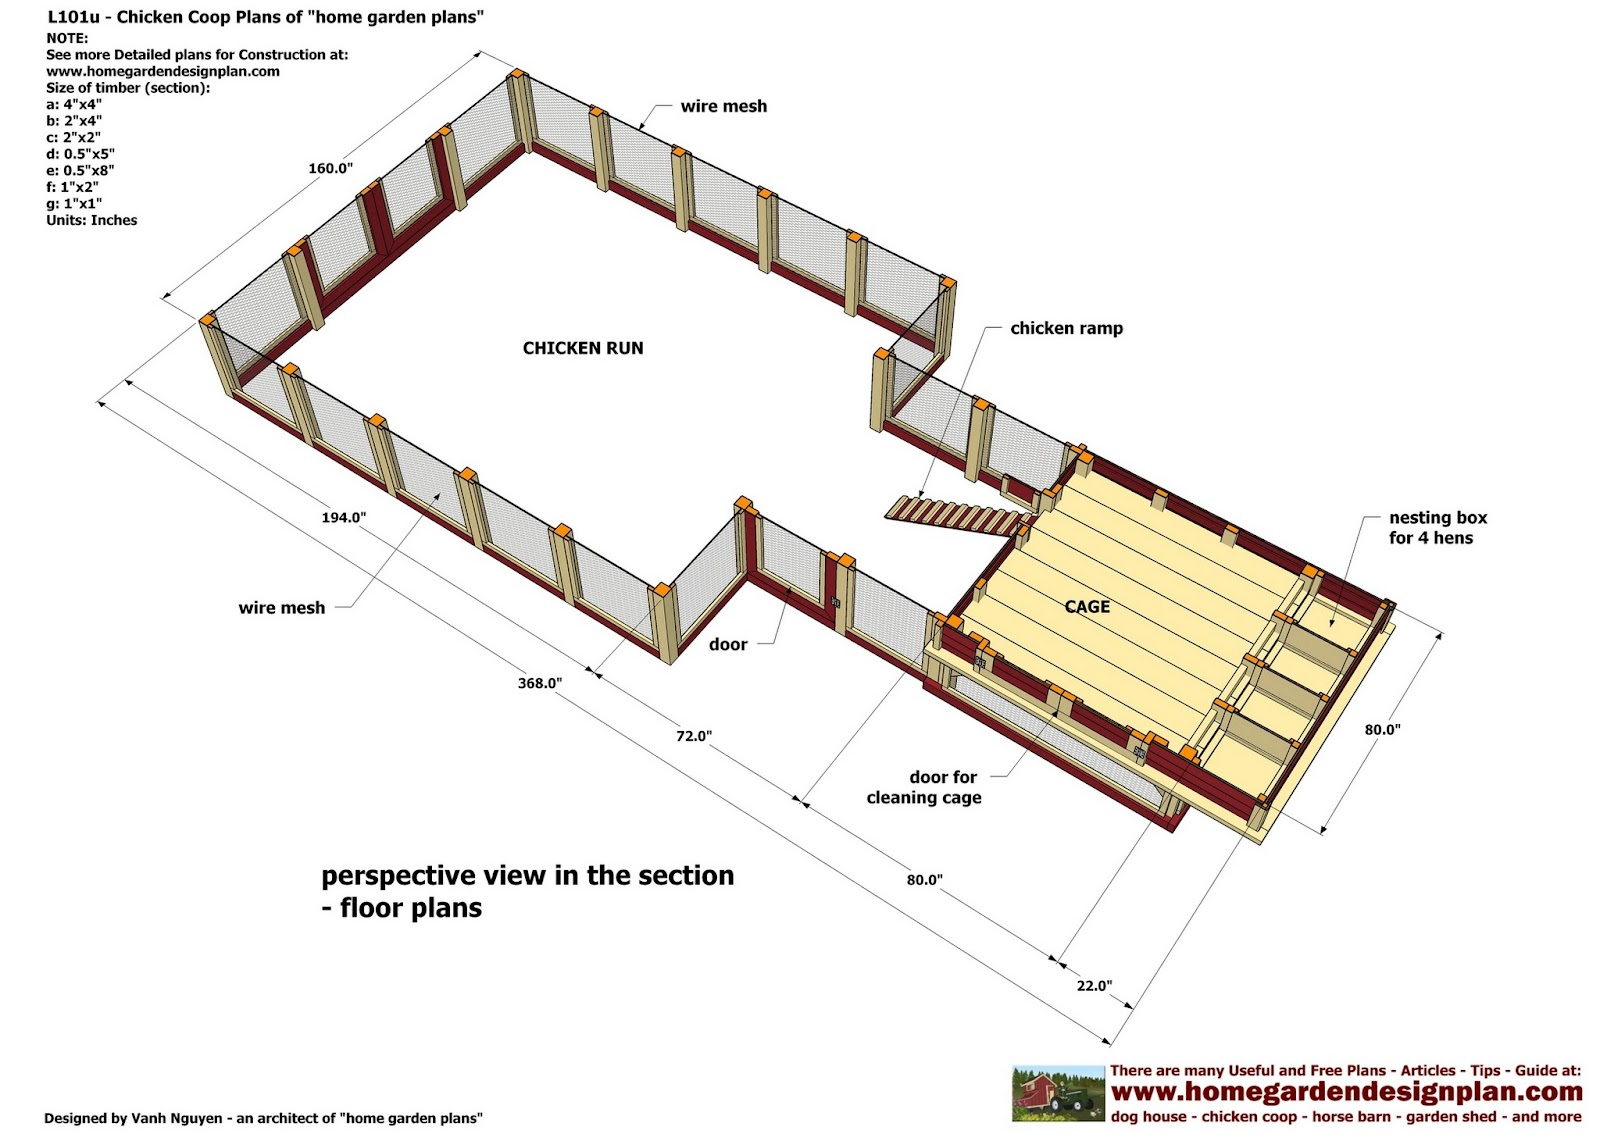 Home garden plans l101 chicken coop plans construction for Free coop plans